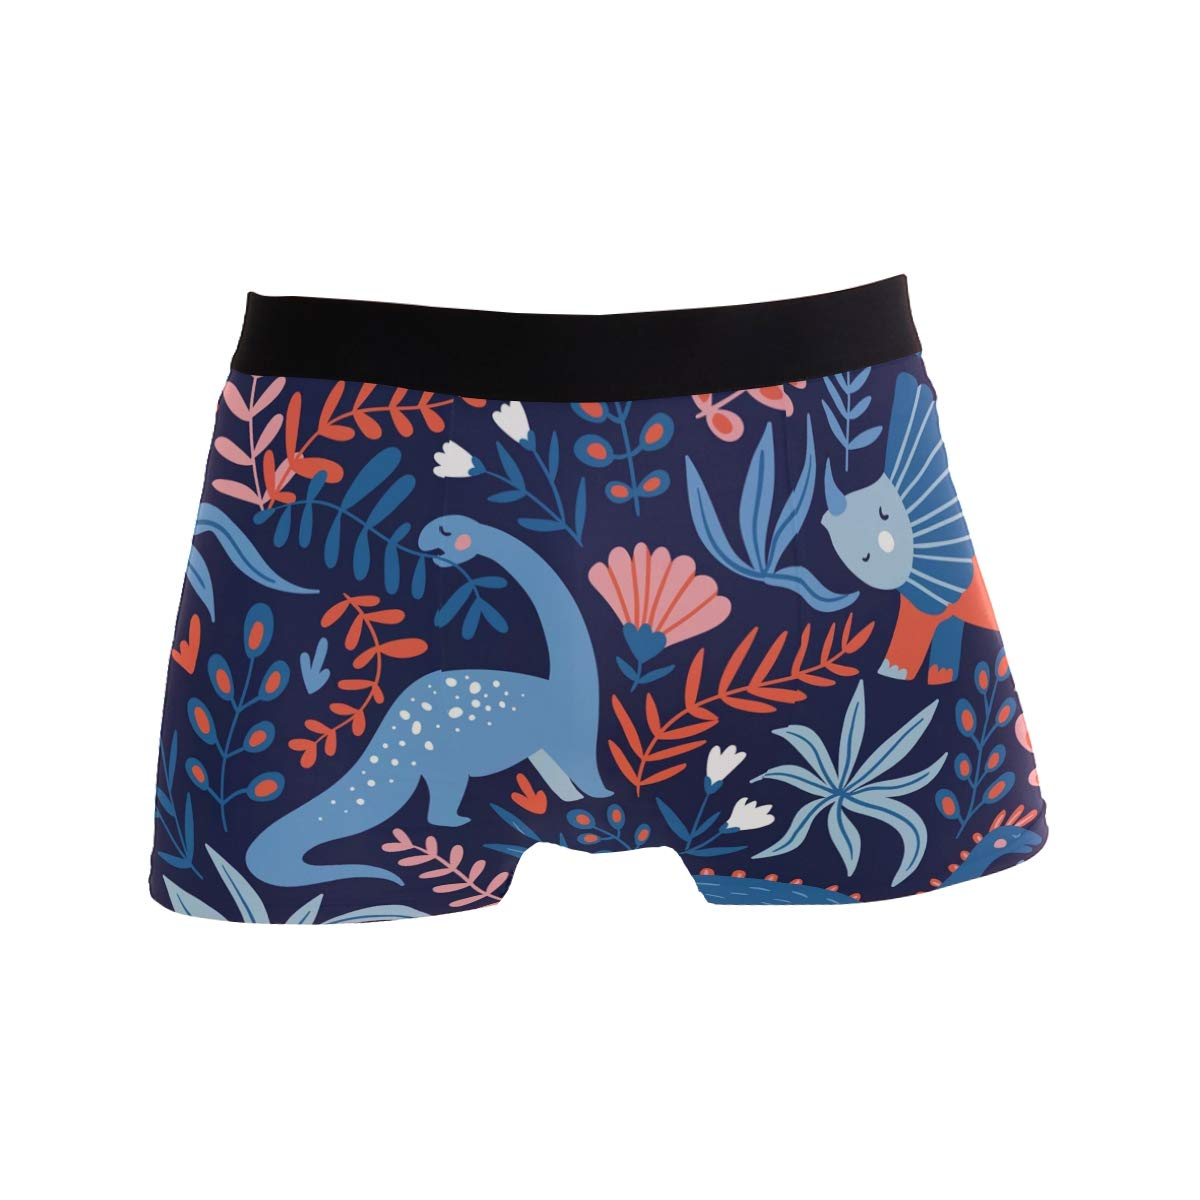 ZZKKO Mens Fashion Cartoon Dinosaurs Mens Underwear Boxer Briefs Breathable